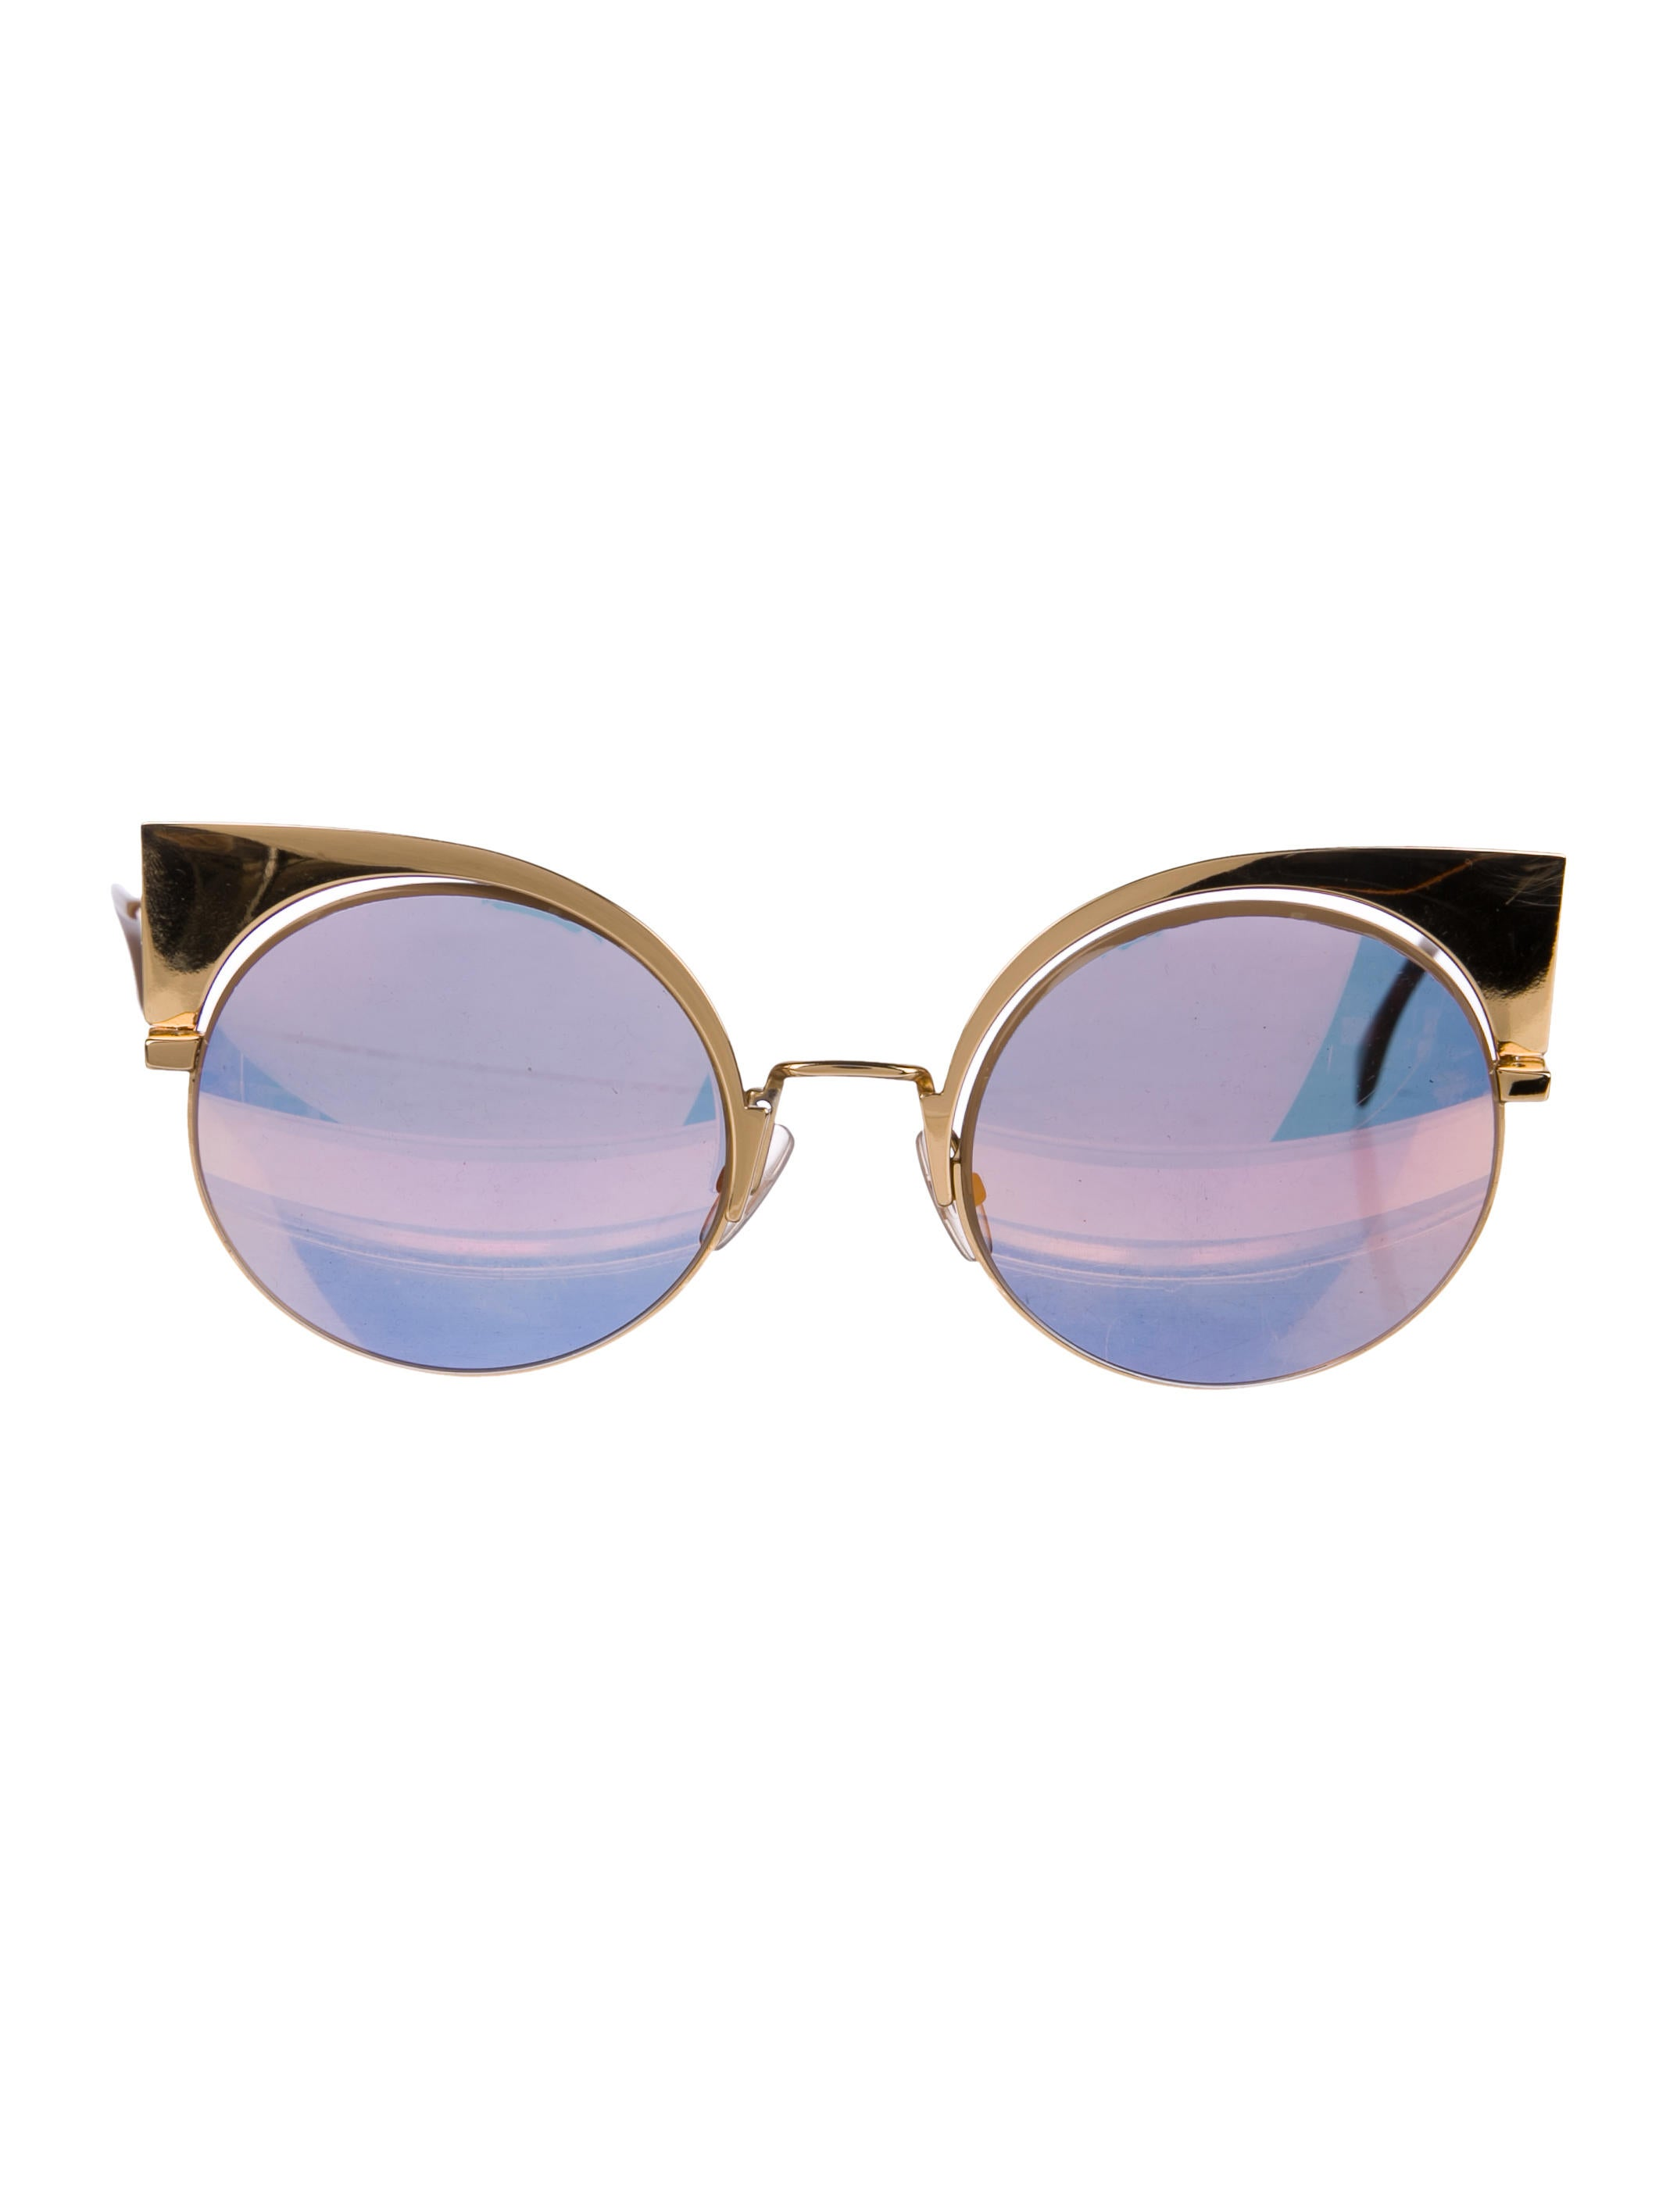 4f4ffb870cd Fendi Eyeshine Mirrored Sunglasses - Accessories - FEN77267